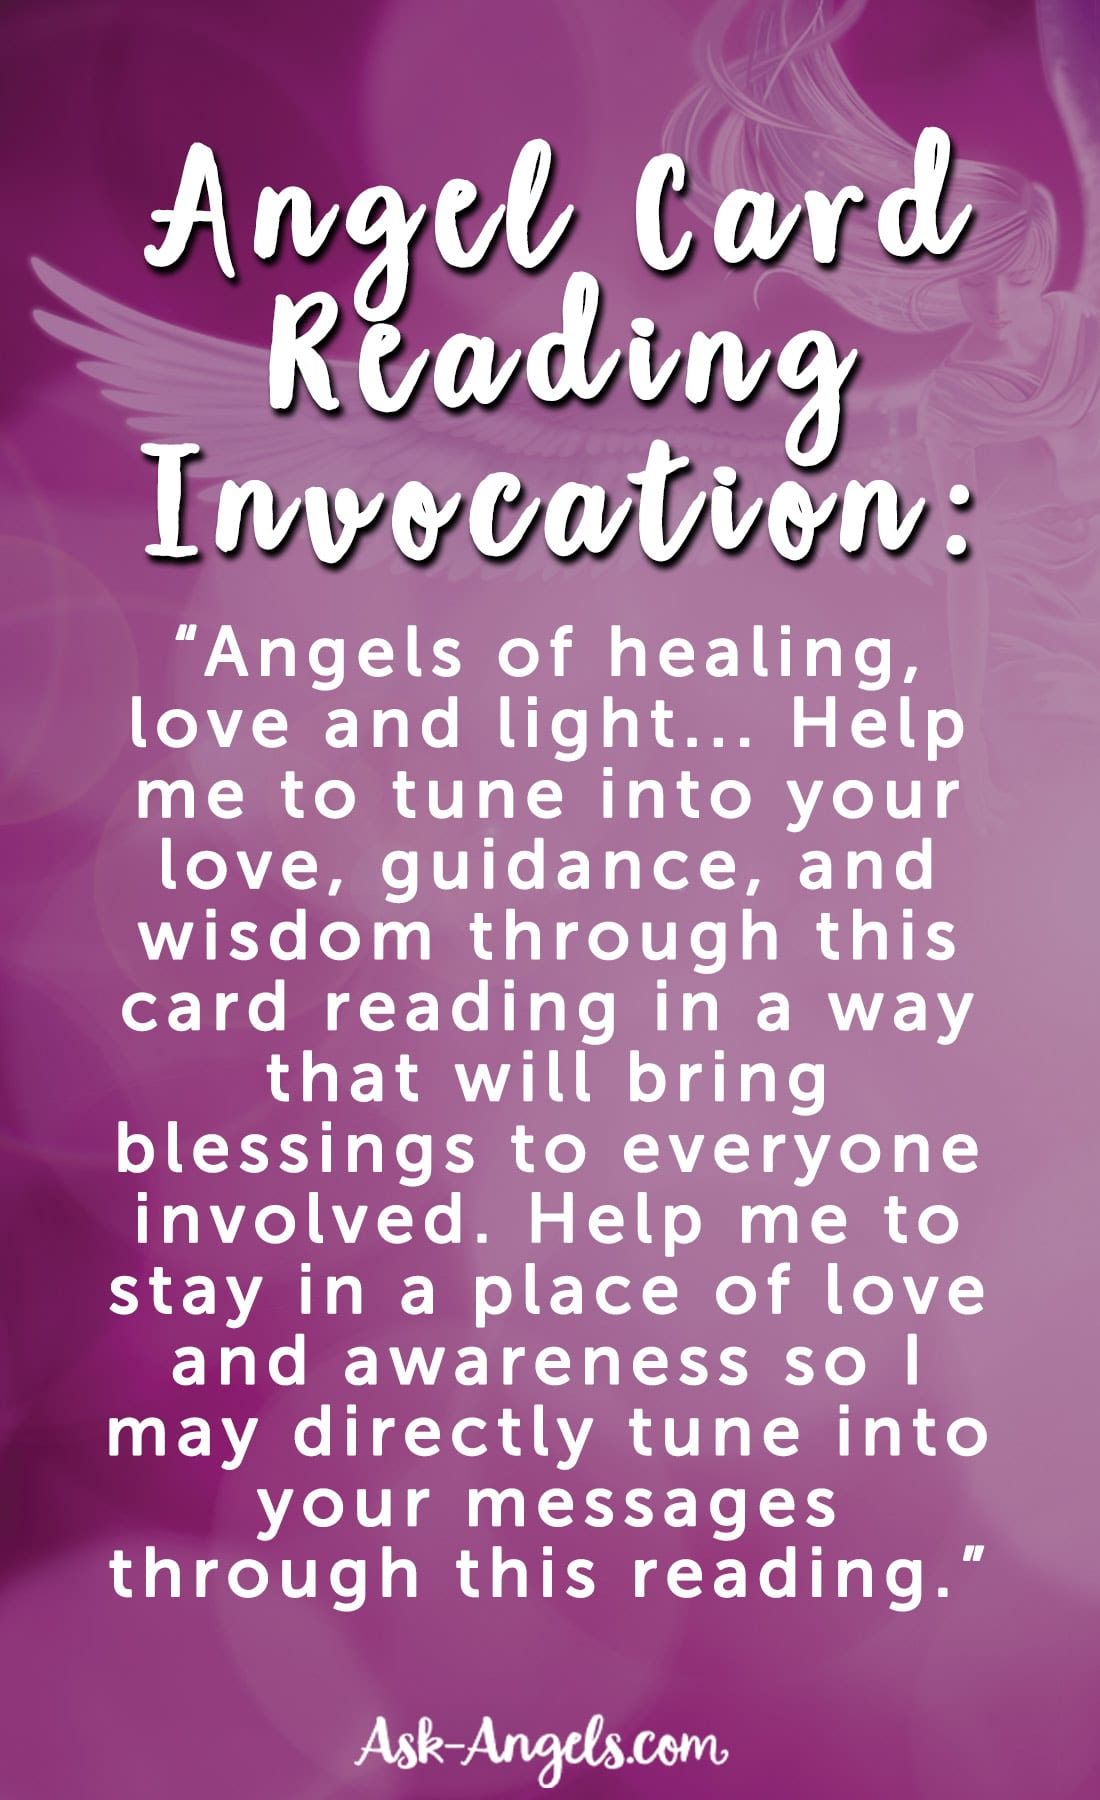 Angel Card Reading Invocation